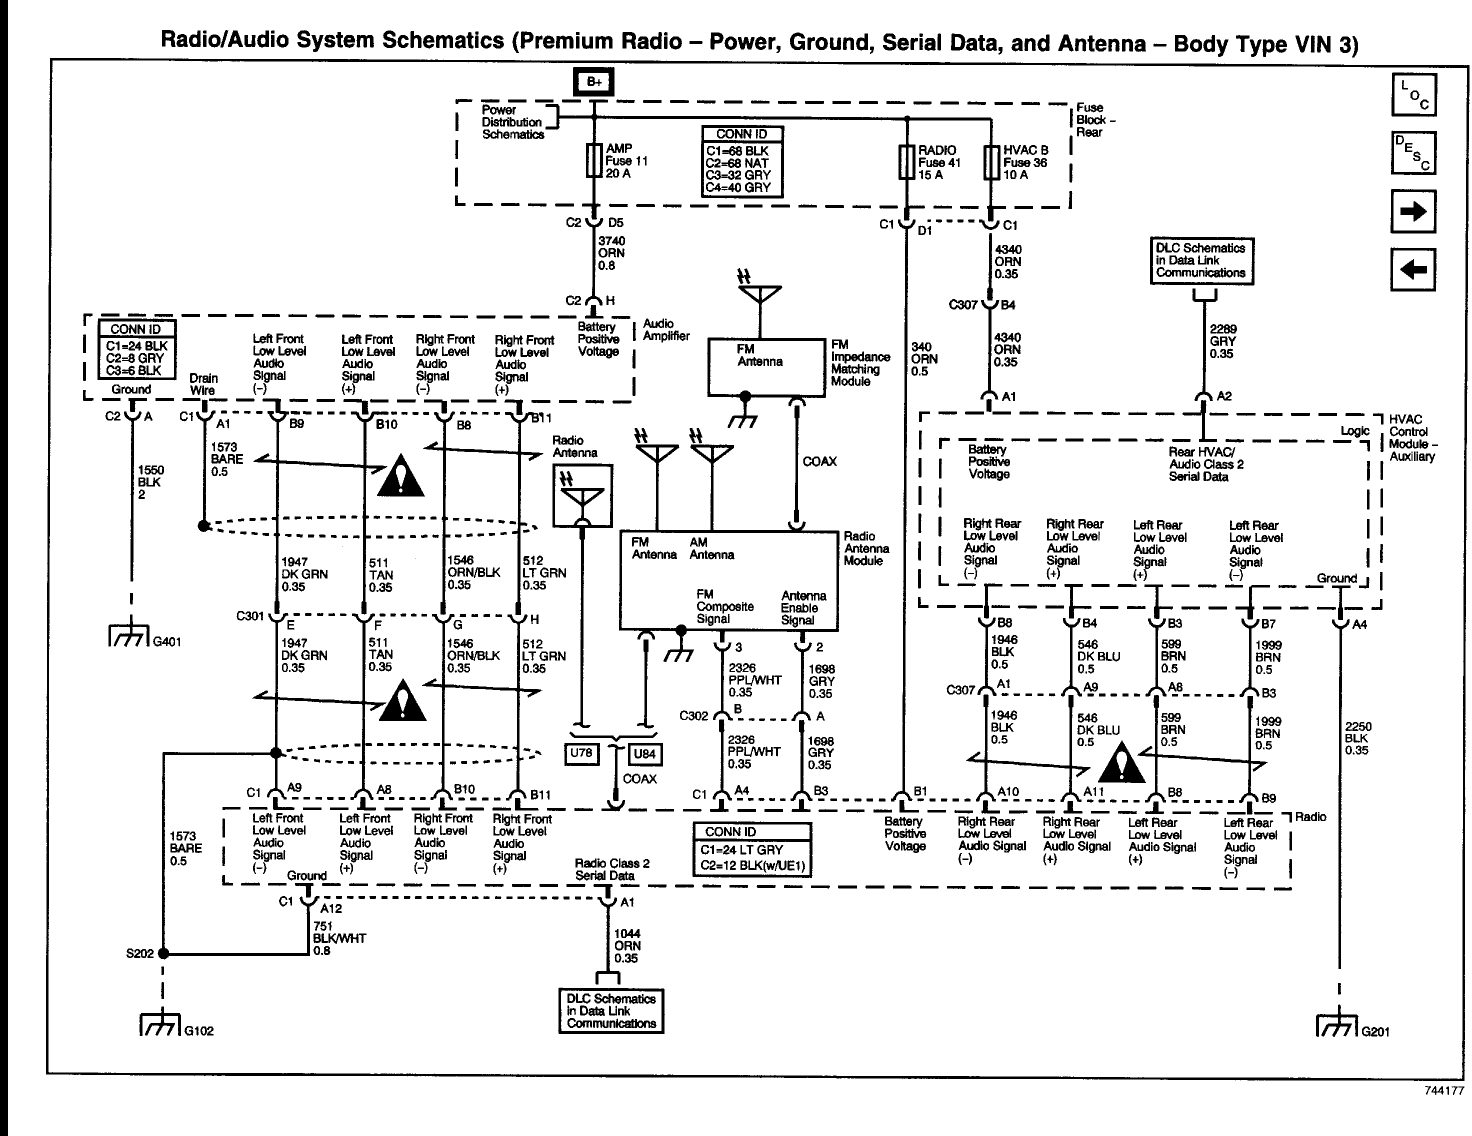 1984 gmc sierra radio wiring diagram 2004 gmc sierra radio wiring diagram | free wiring diagram